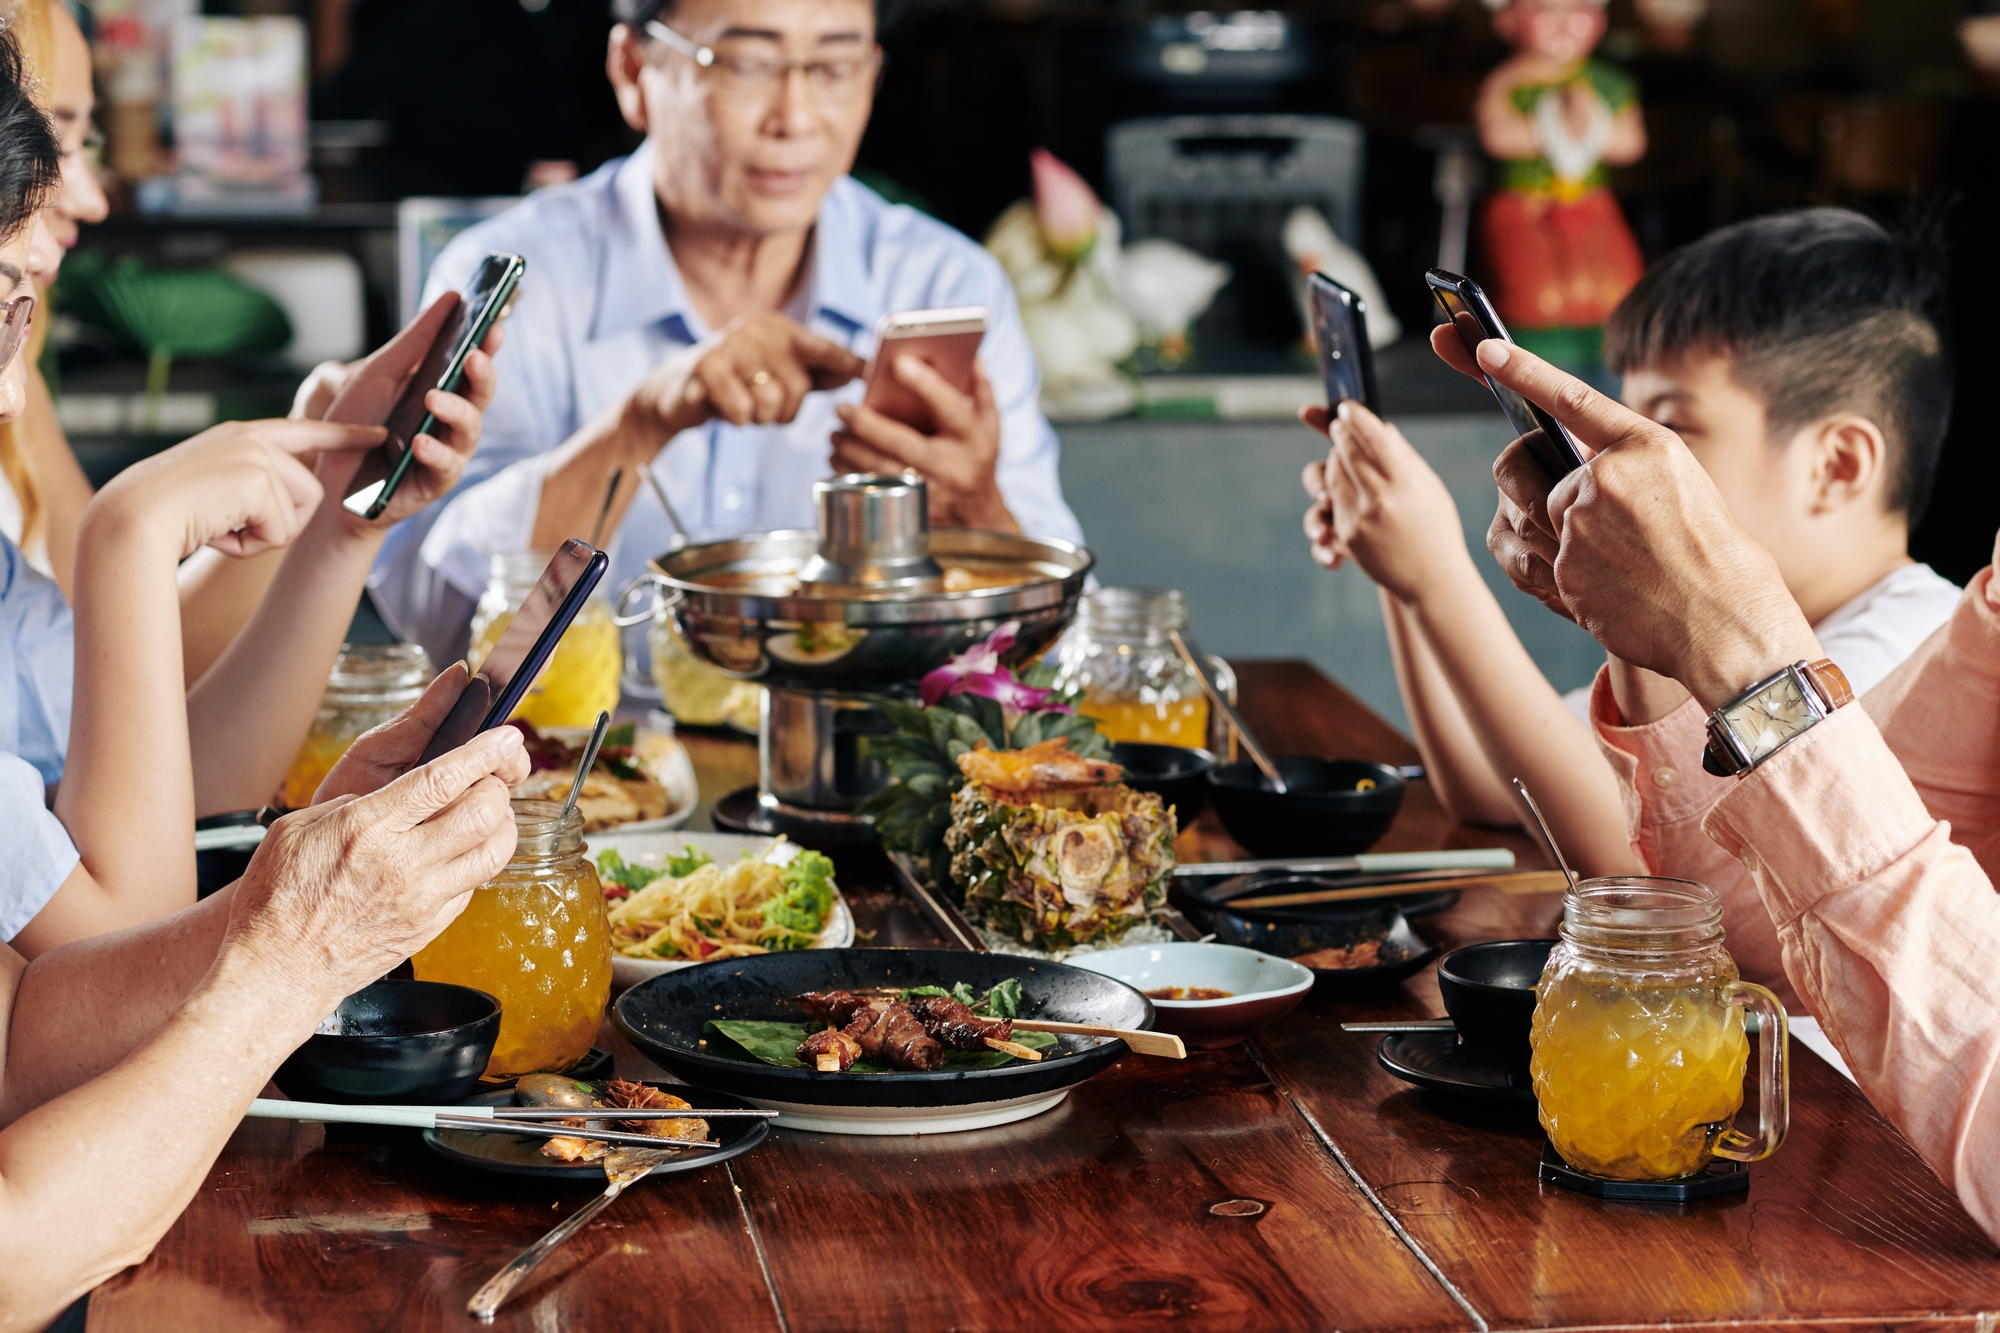 Family members with smartphones spending time on social media instead of talking during family dinner